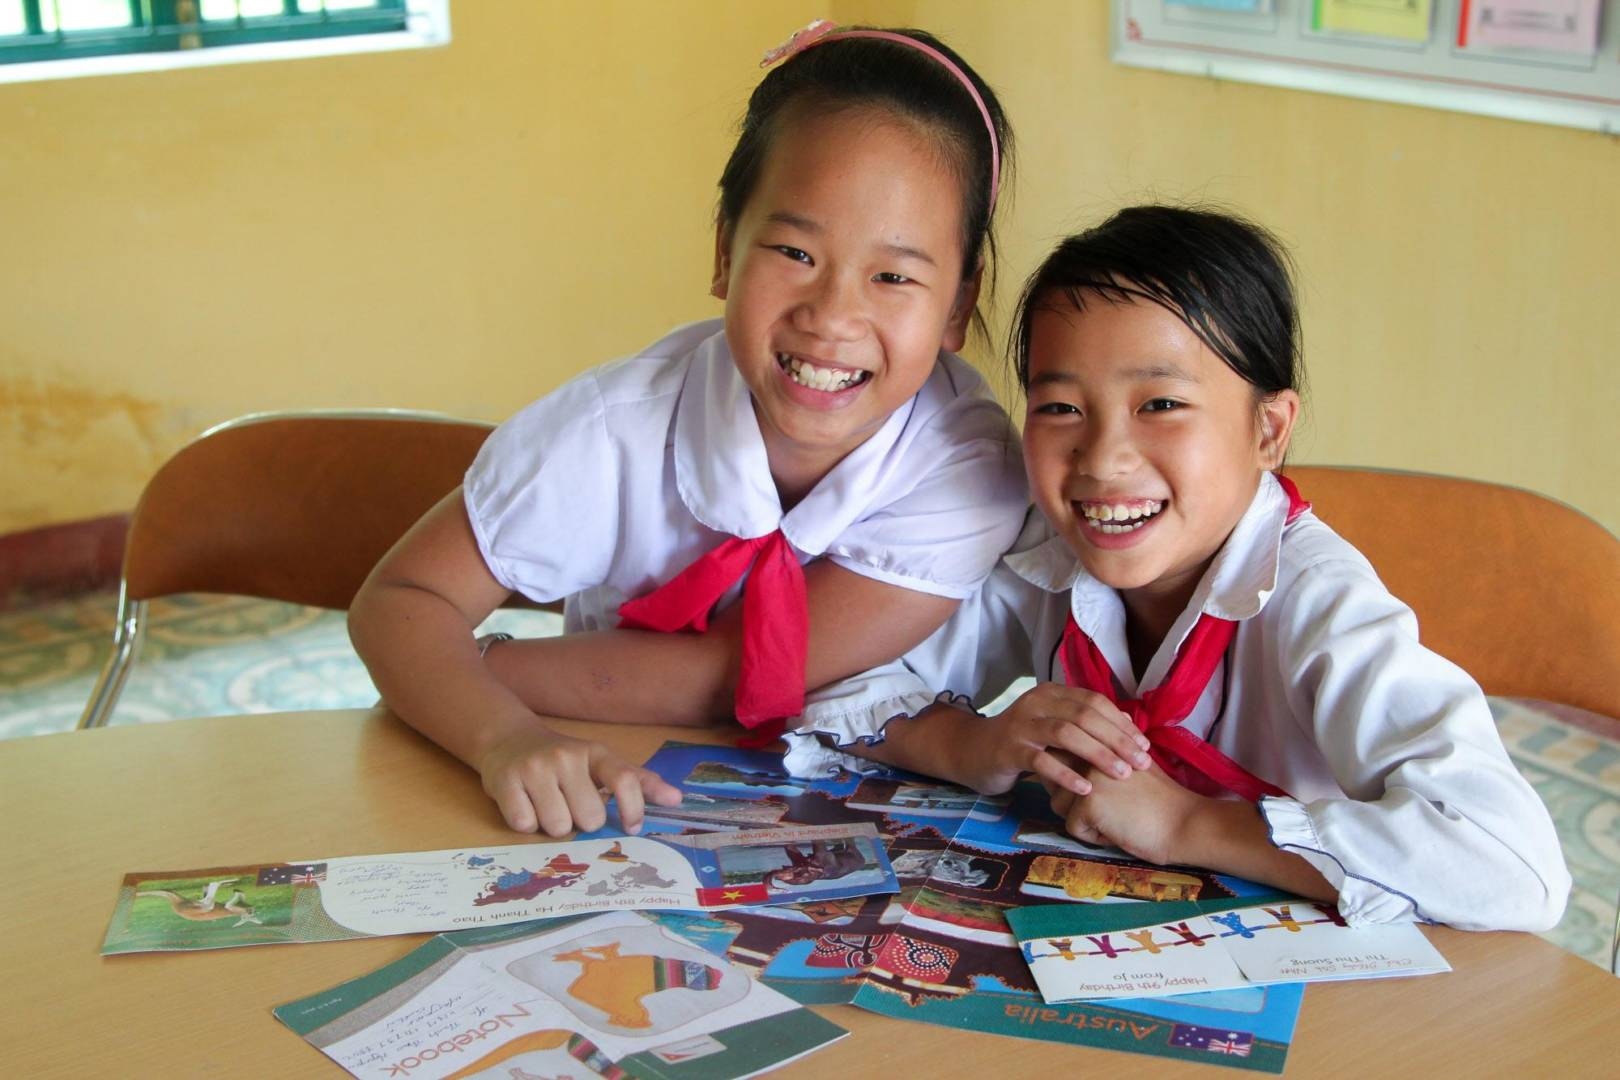 We make it easy to send your sponsored child a fun, meaningful greeting card! Find out how.